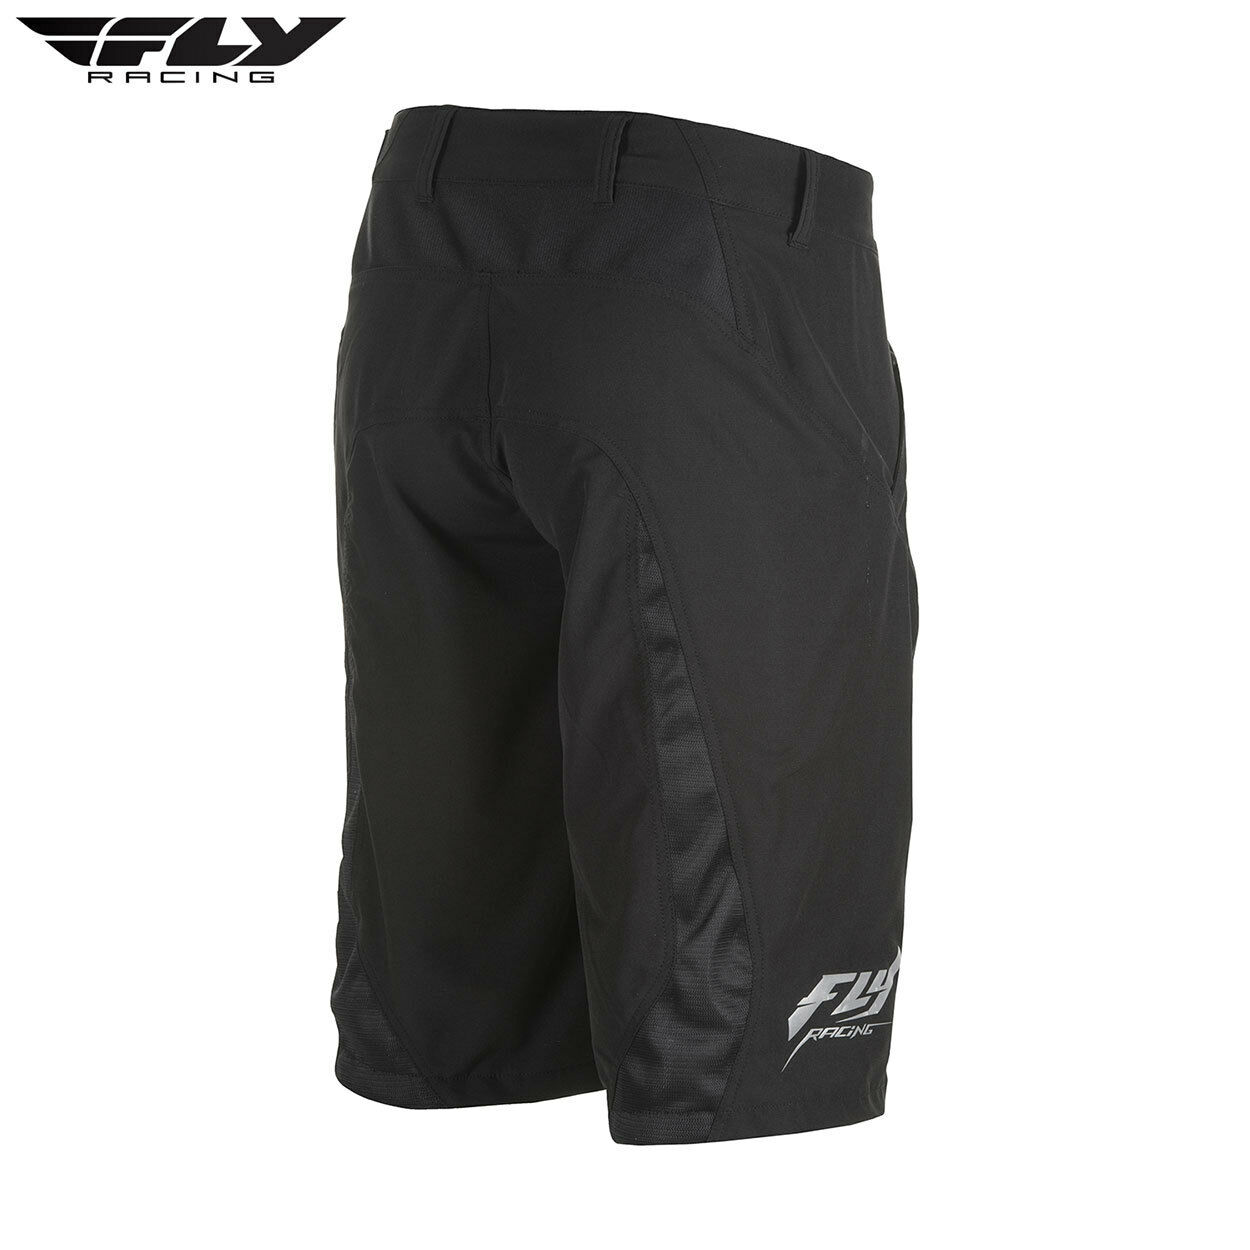 FLY Bike Warpath Adult Breathable Stretch Shorts MTB Mountain/Downhill Mountain/Downhill Mountain/Downhill Cycling c57d74